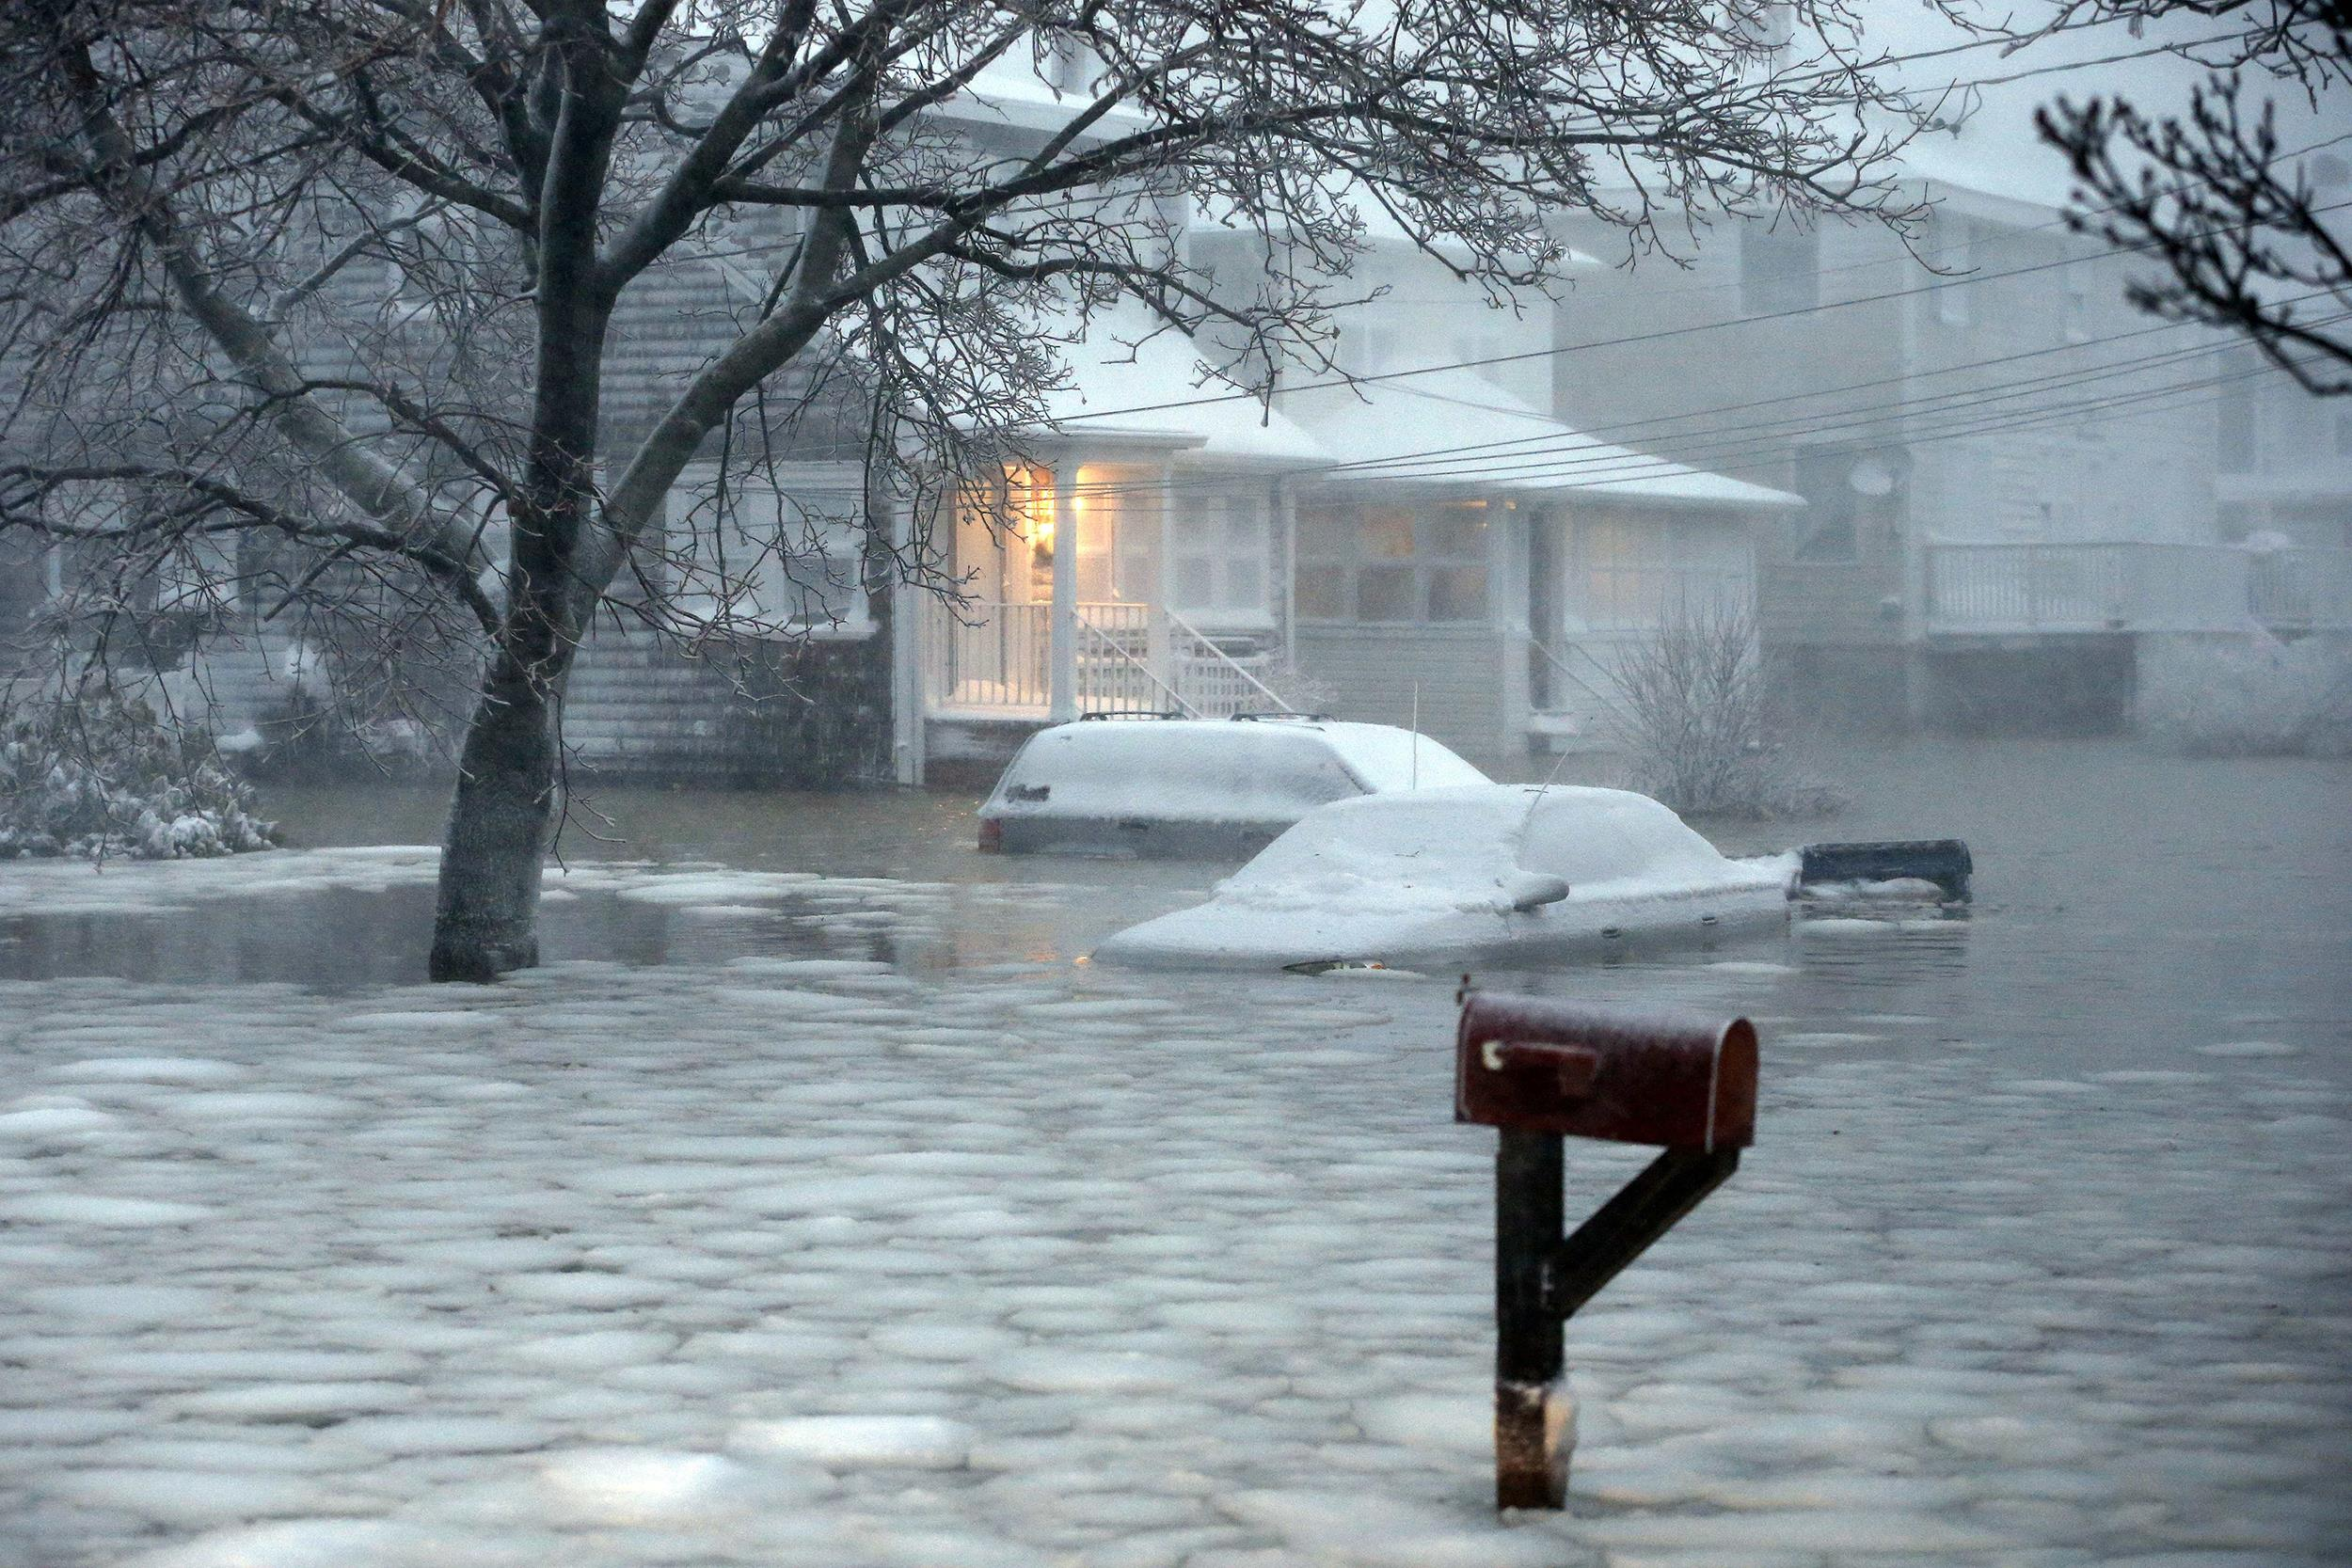 Image: Water floods a street on the coast in Scituate, Mass., Tuesday, Jan. 27